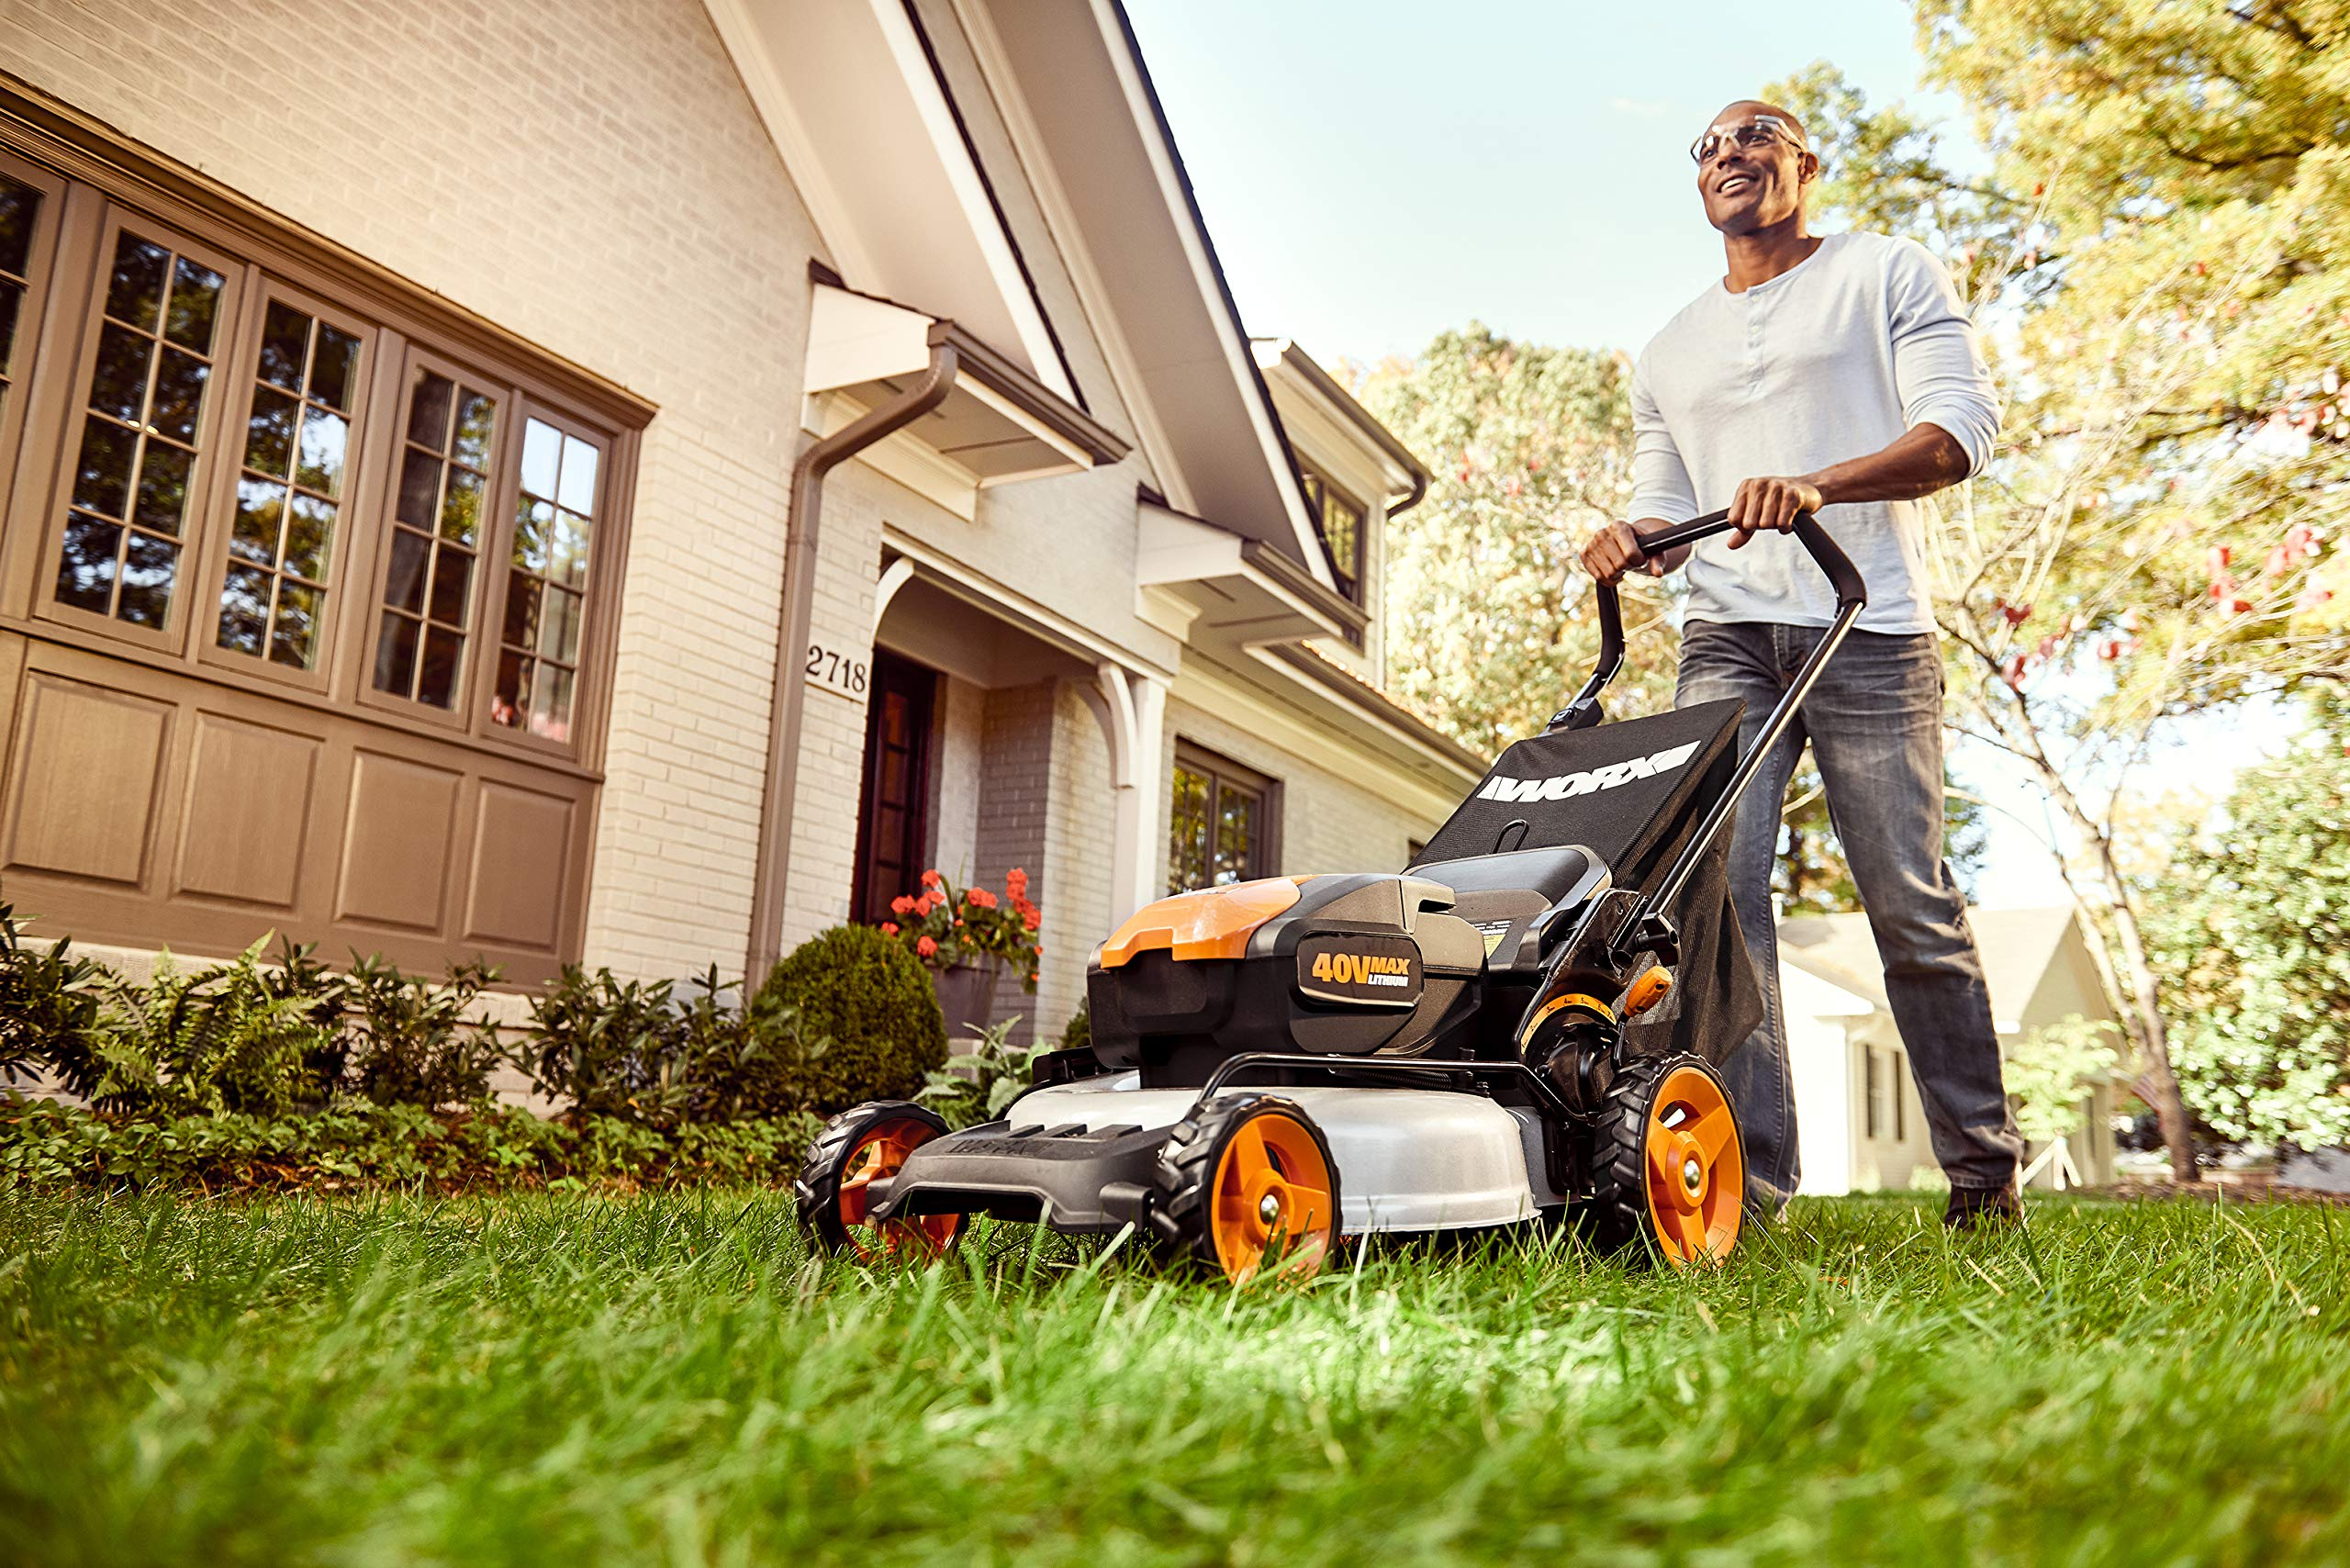 "WORX WG751 40V 19'' Cordless Lawn Mower, 2 Batteries & Charger Included, Black and Orange 4 Our 20"" 40V PowerShare mower comes with 2 rechargeable 20V 5.0Ah batteries that deliver 40V of rugged mowing power Steel makes all the difference. It lasts longer and performs better on undulating terrain. And with 20"" of it, you'll make fewer passes on your lawn Worx Power Share is compatible with all Worx 20v and 40v tools, outdoor power and lifestyle products"